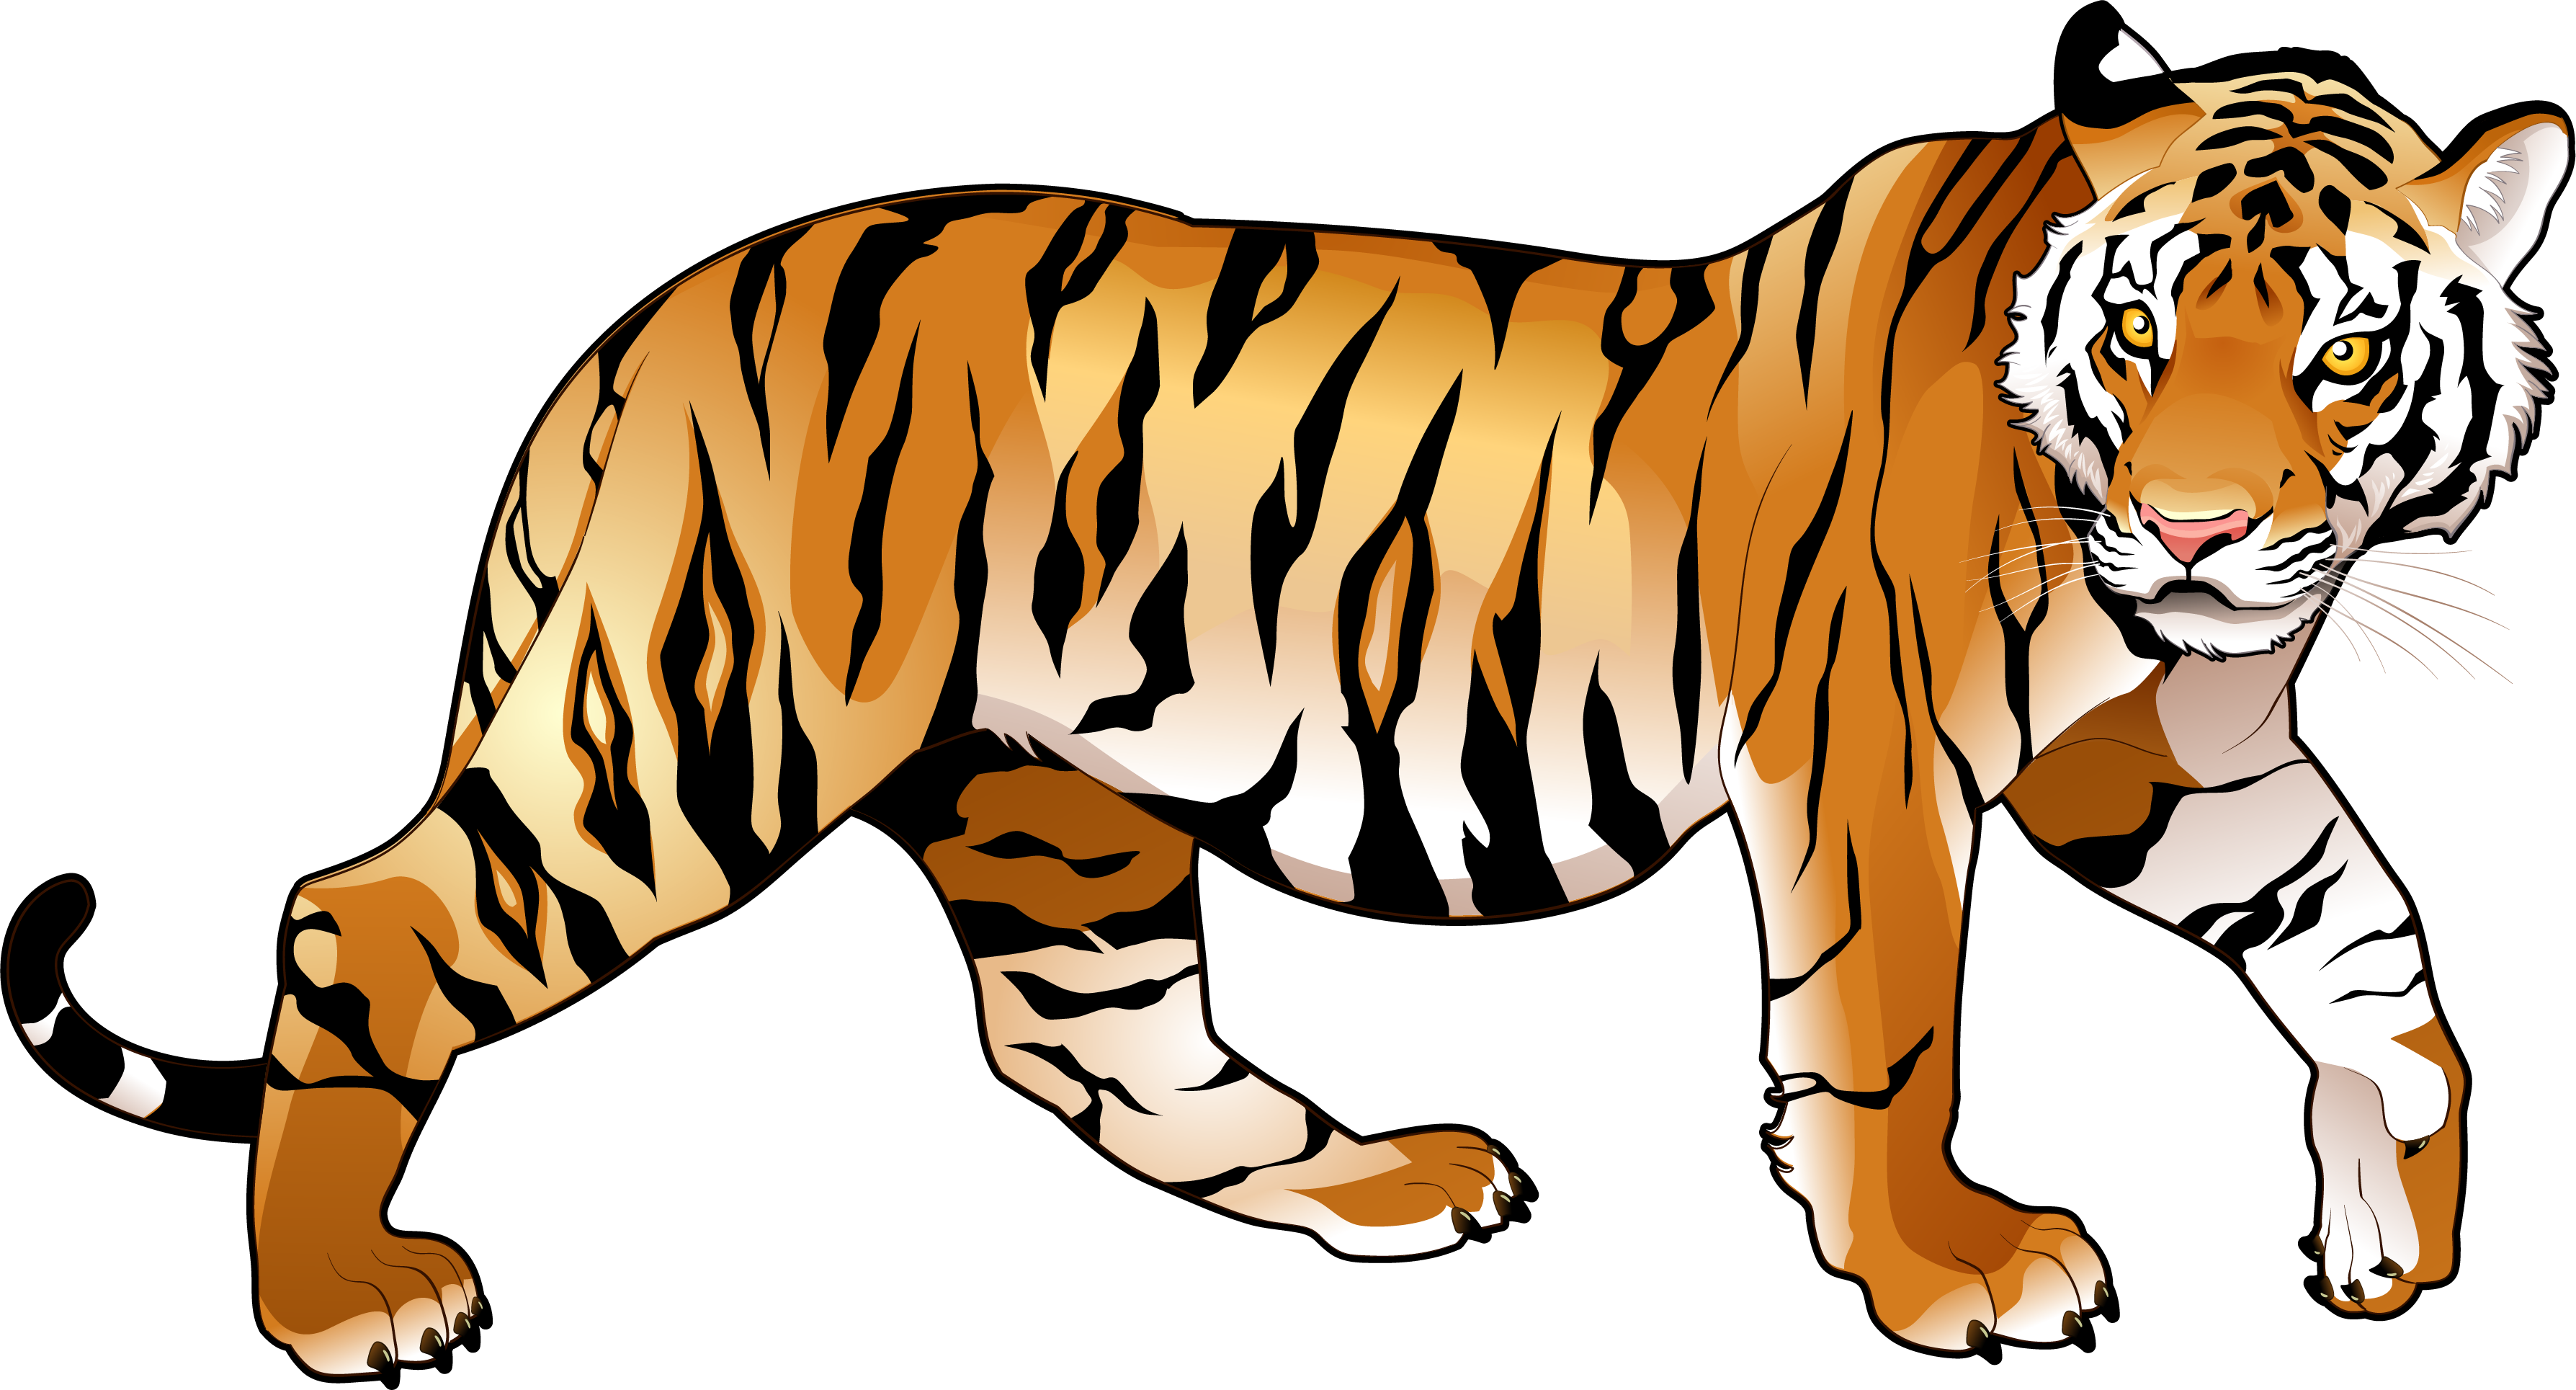 tiger clipart at getdrawings com free for personal use tiger rh getdrawings com tiger clipart images tigger clipart free